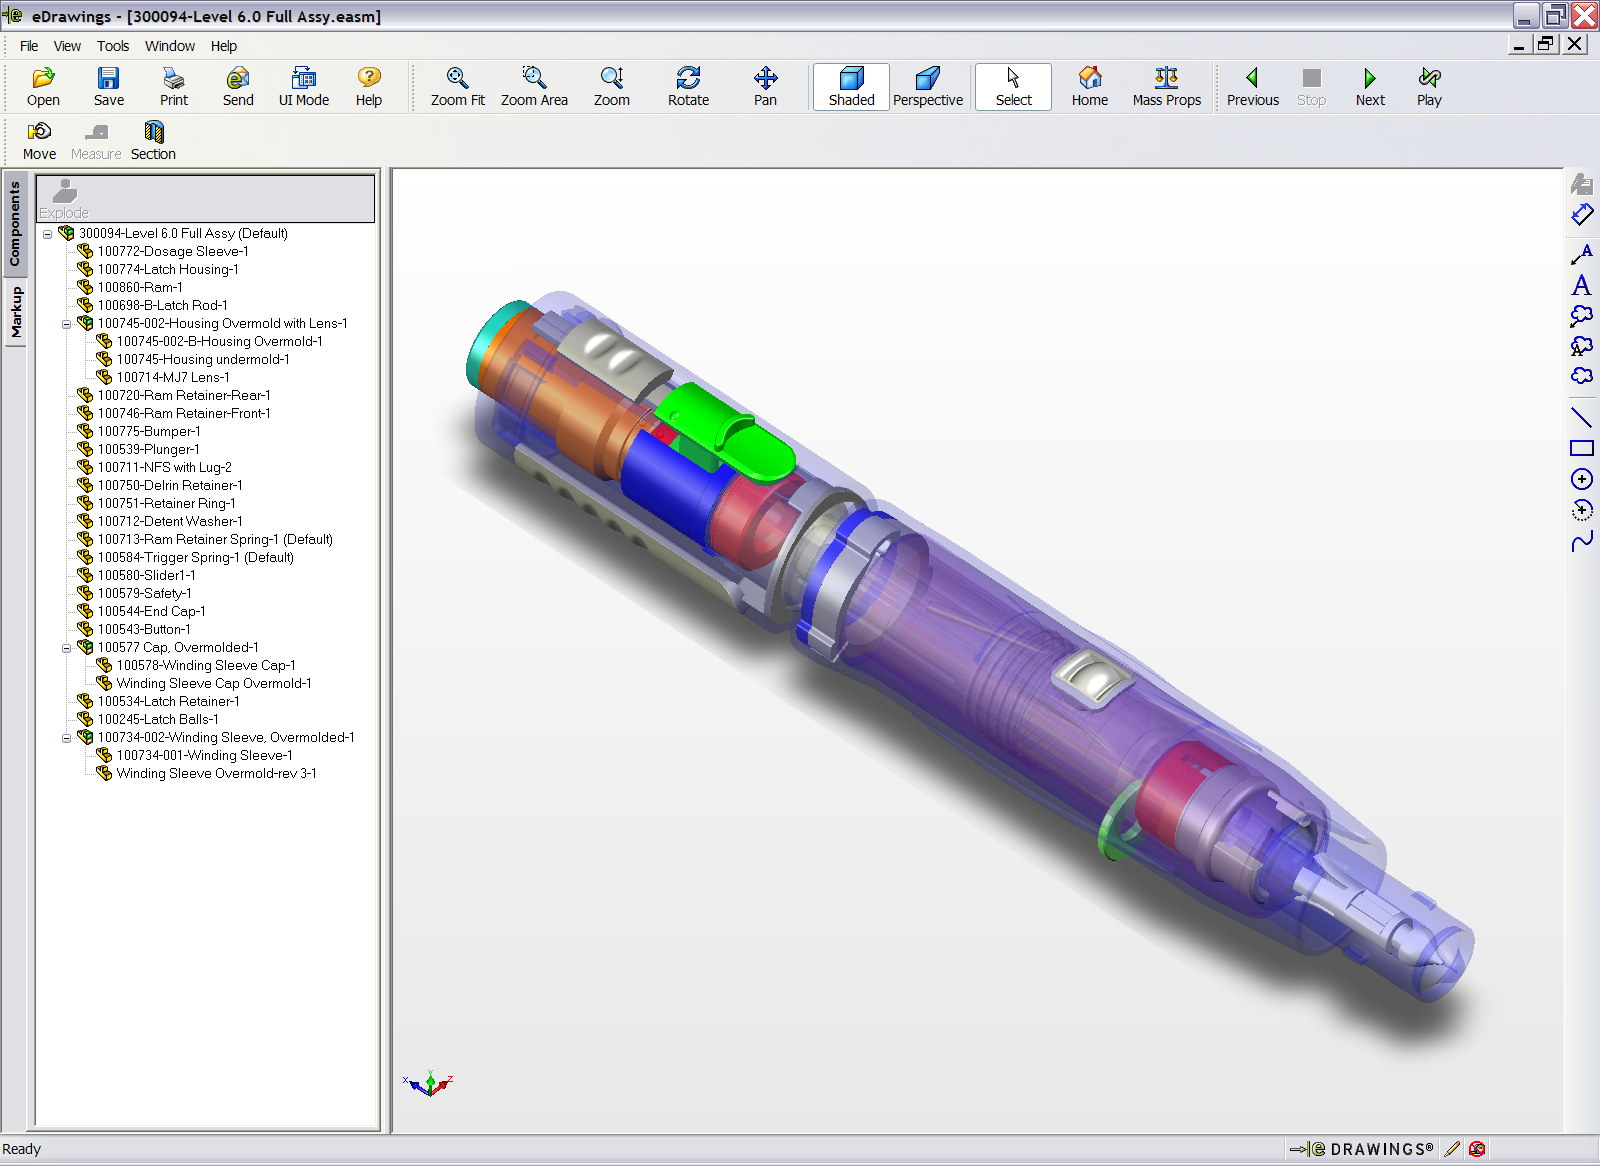 The SOLIDWORKS edrawings collaboration and viewing tool allows you to further streamline the product definition process by improving communication with managers, marketers, customers, and vendors via